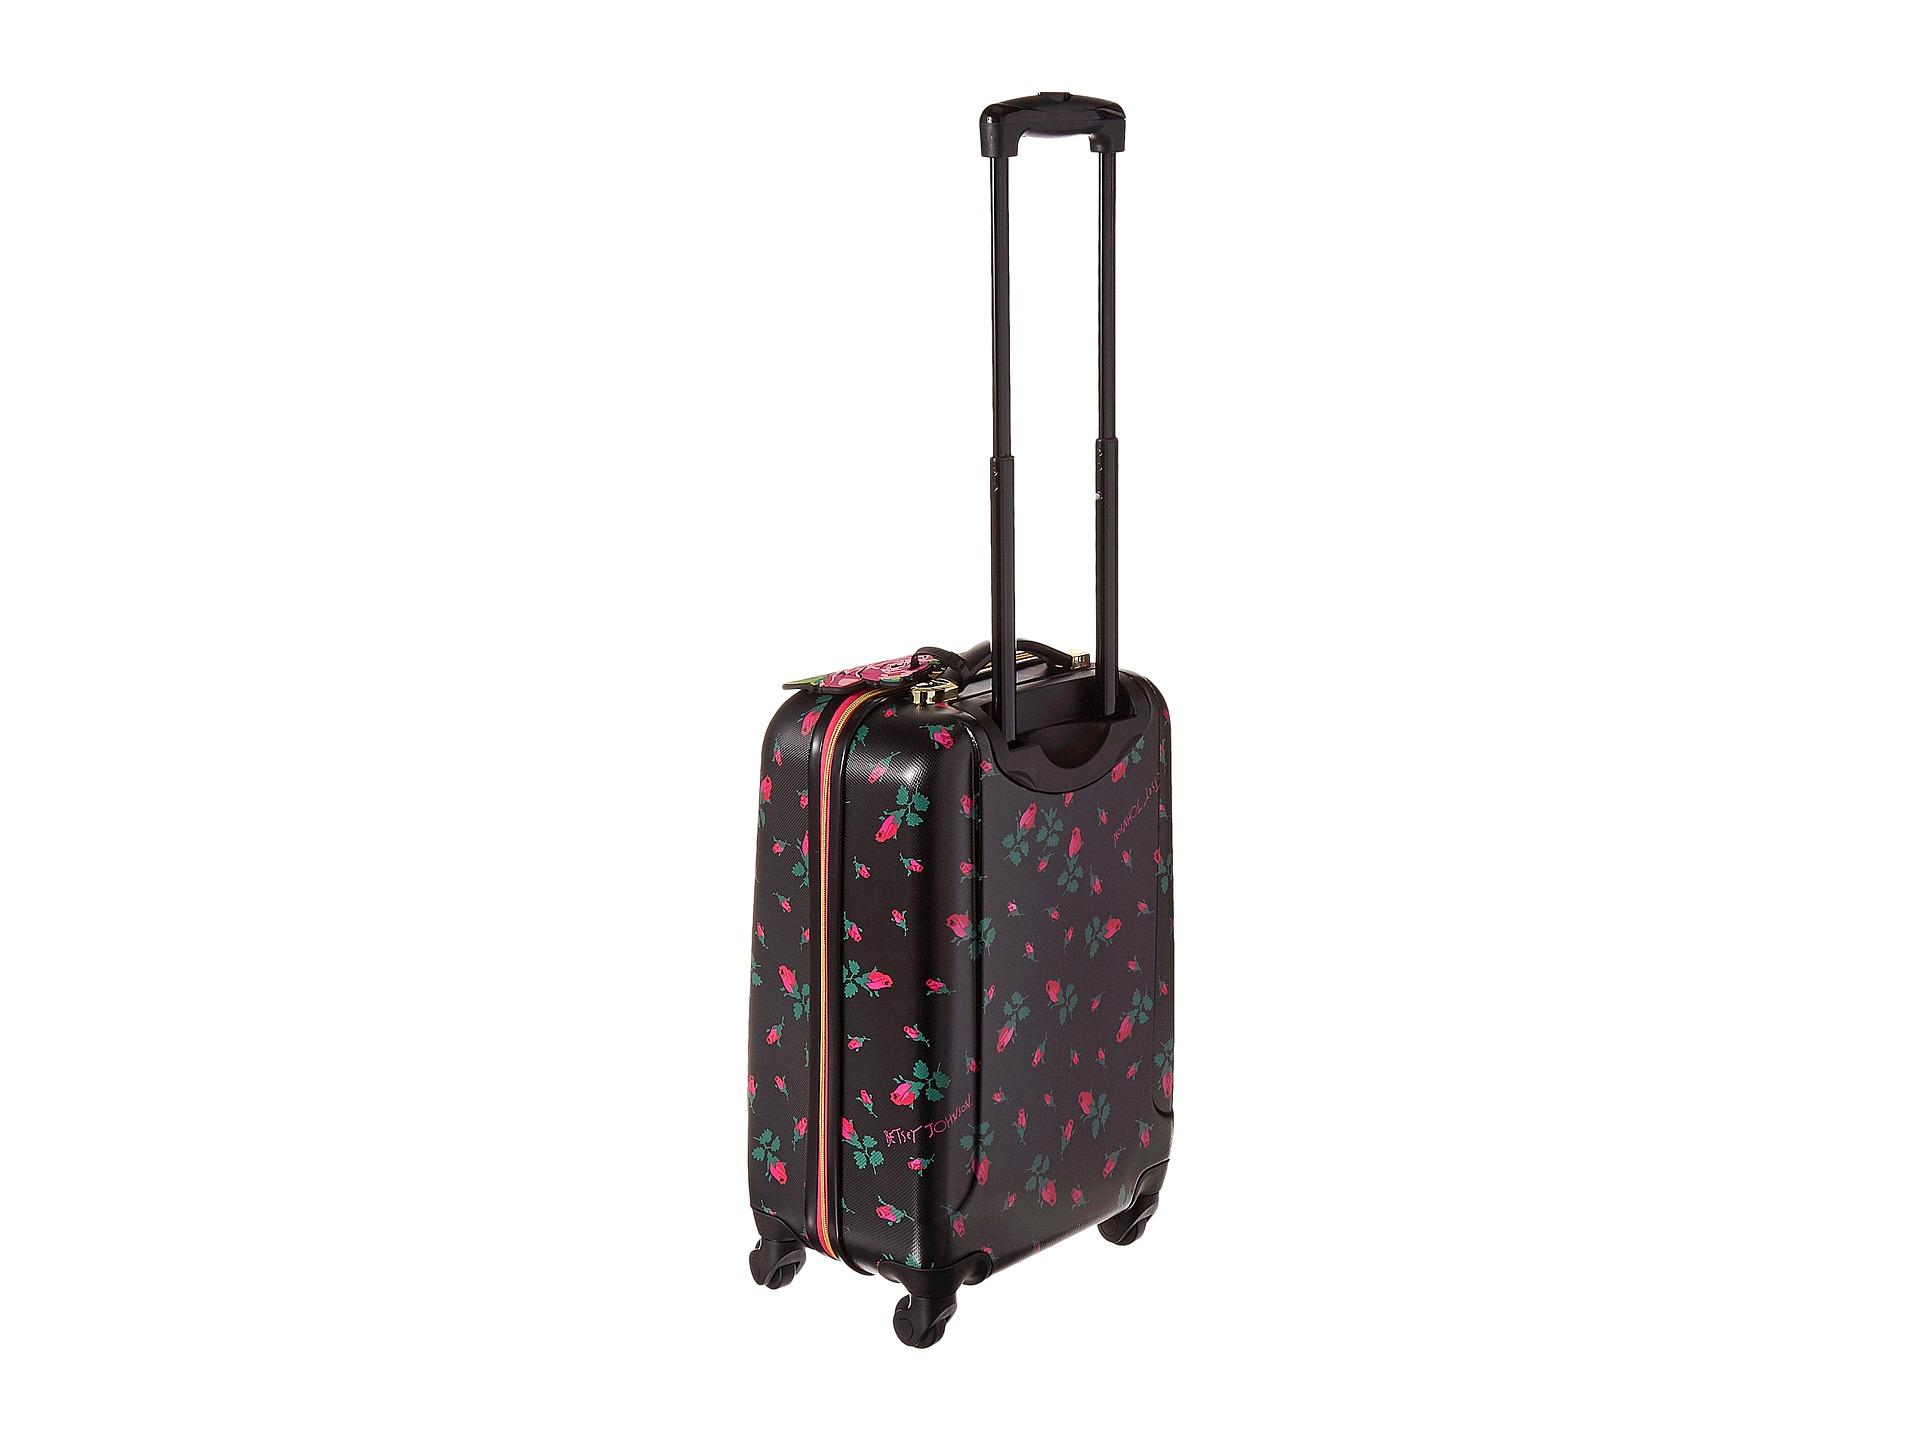 Luggage Pull Handle With Wheels